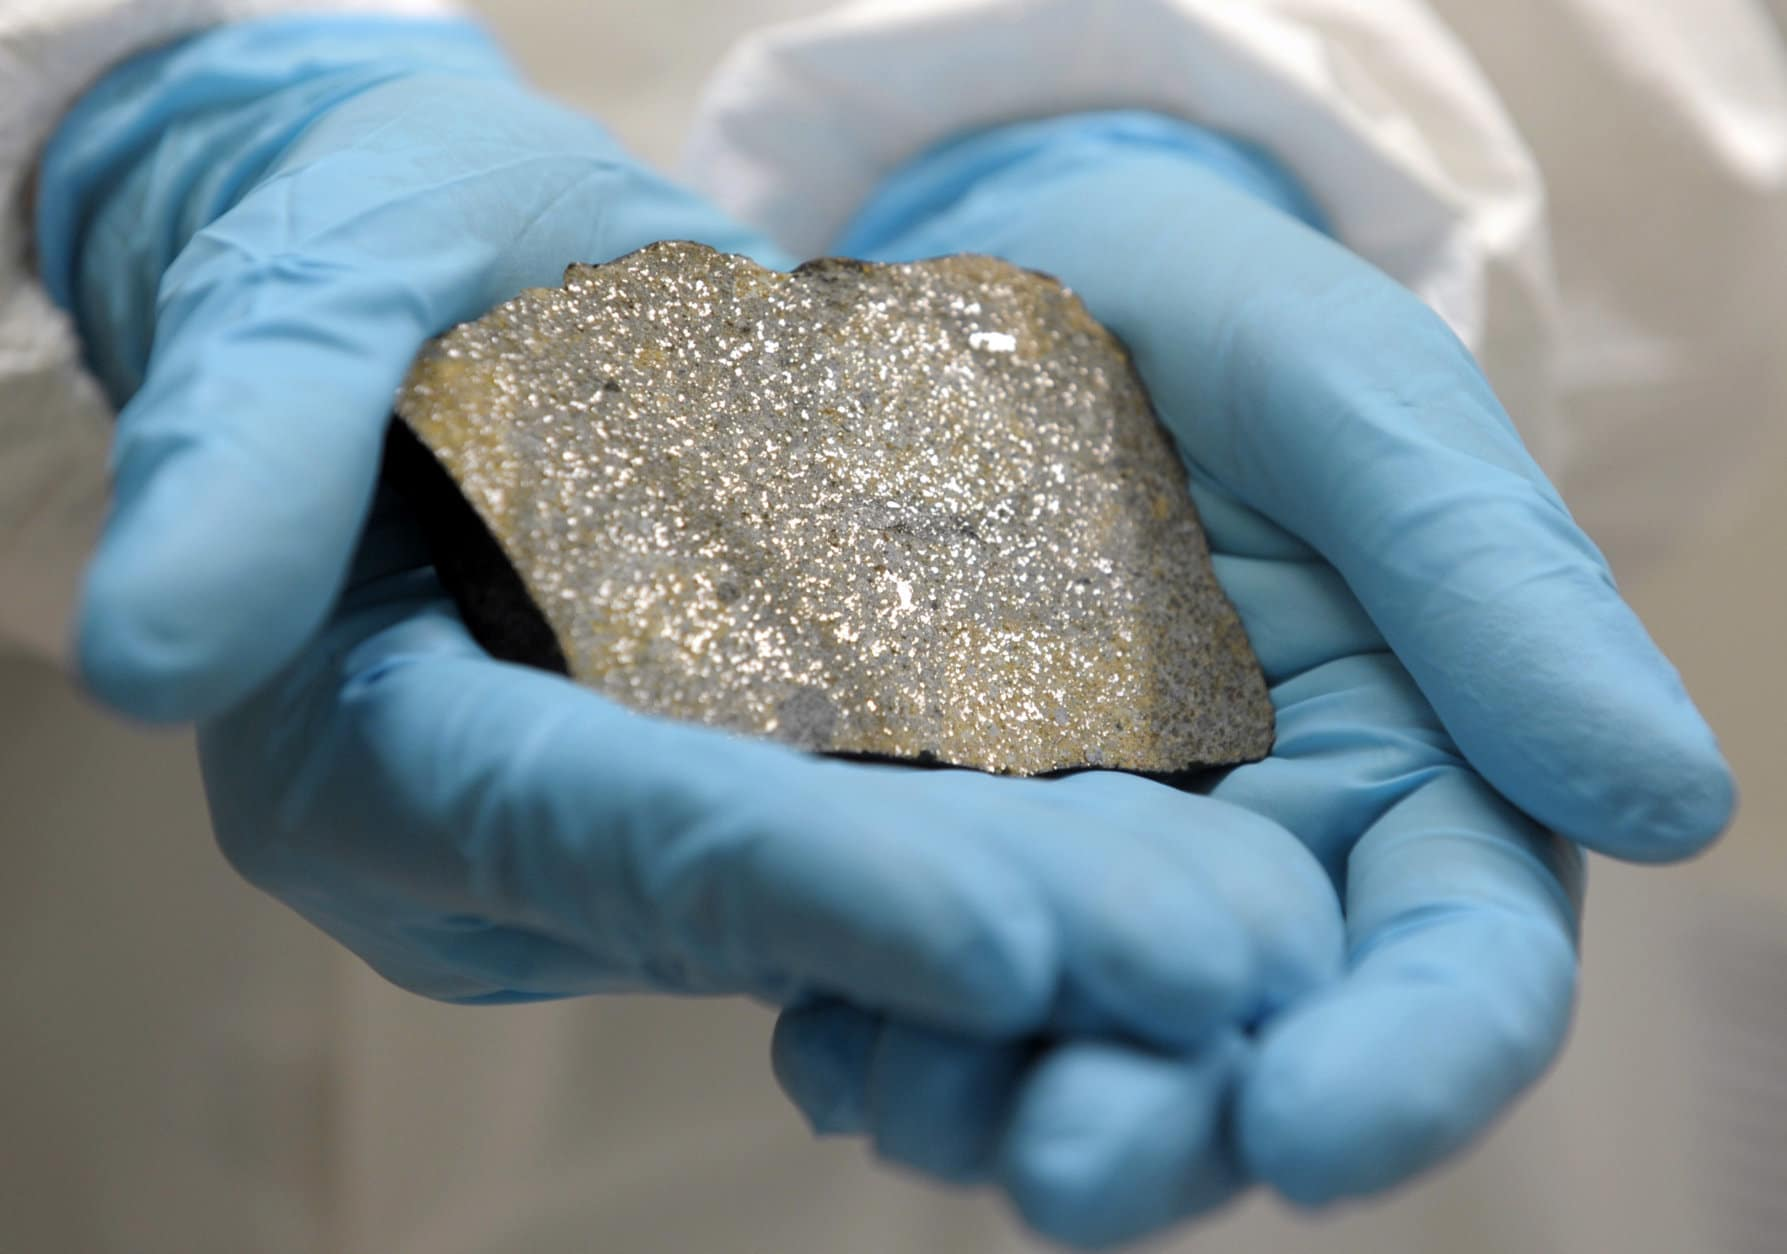 Catherine Corrigan a geologist with the Division of Meteorites at the Smithsonian Natural History Museum, holds a slice of a meteorite at a new meteorite lab in Suitland, Md., Monday, Nov. 28, 2011. (AP Photo/Susan Walsh)